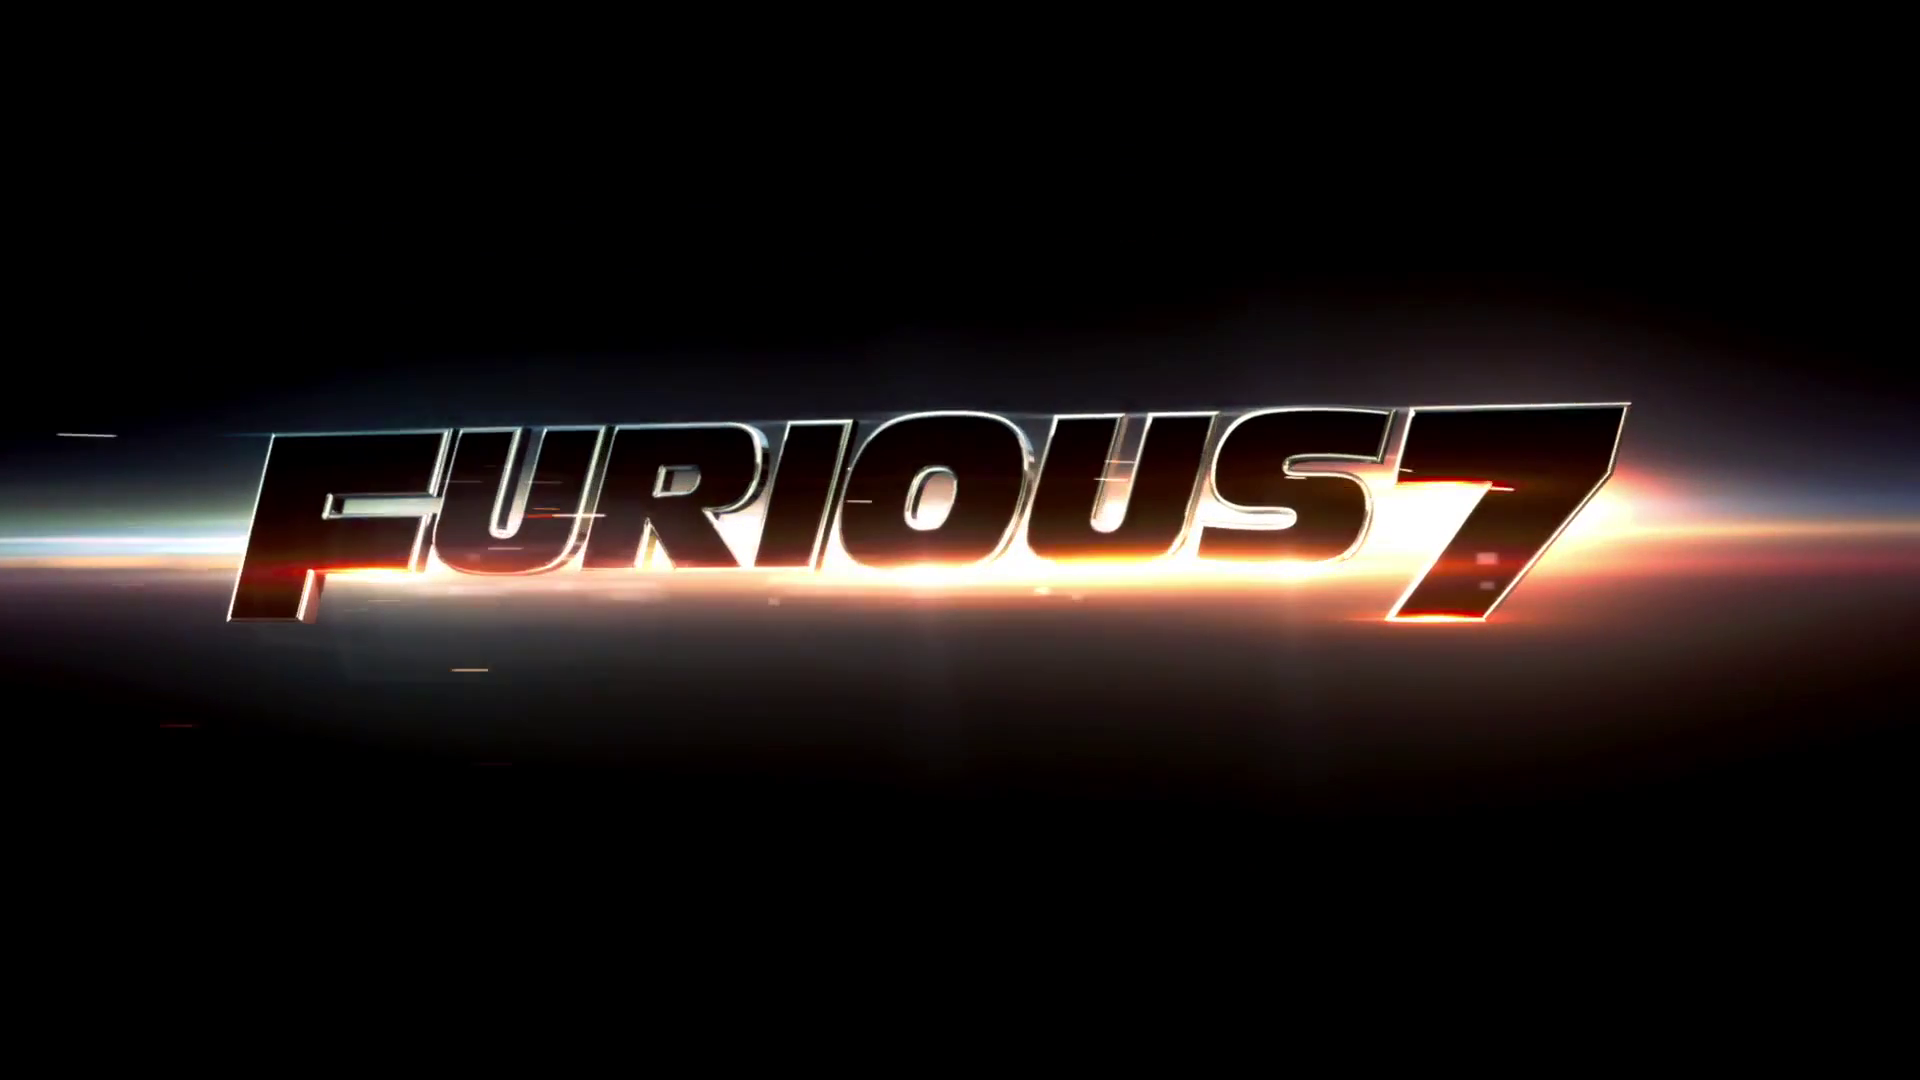 Fast and furious 7 Wallpaper download 1920x1080